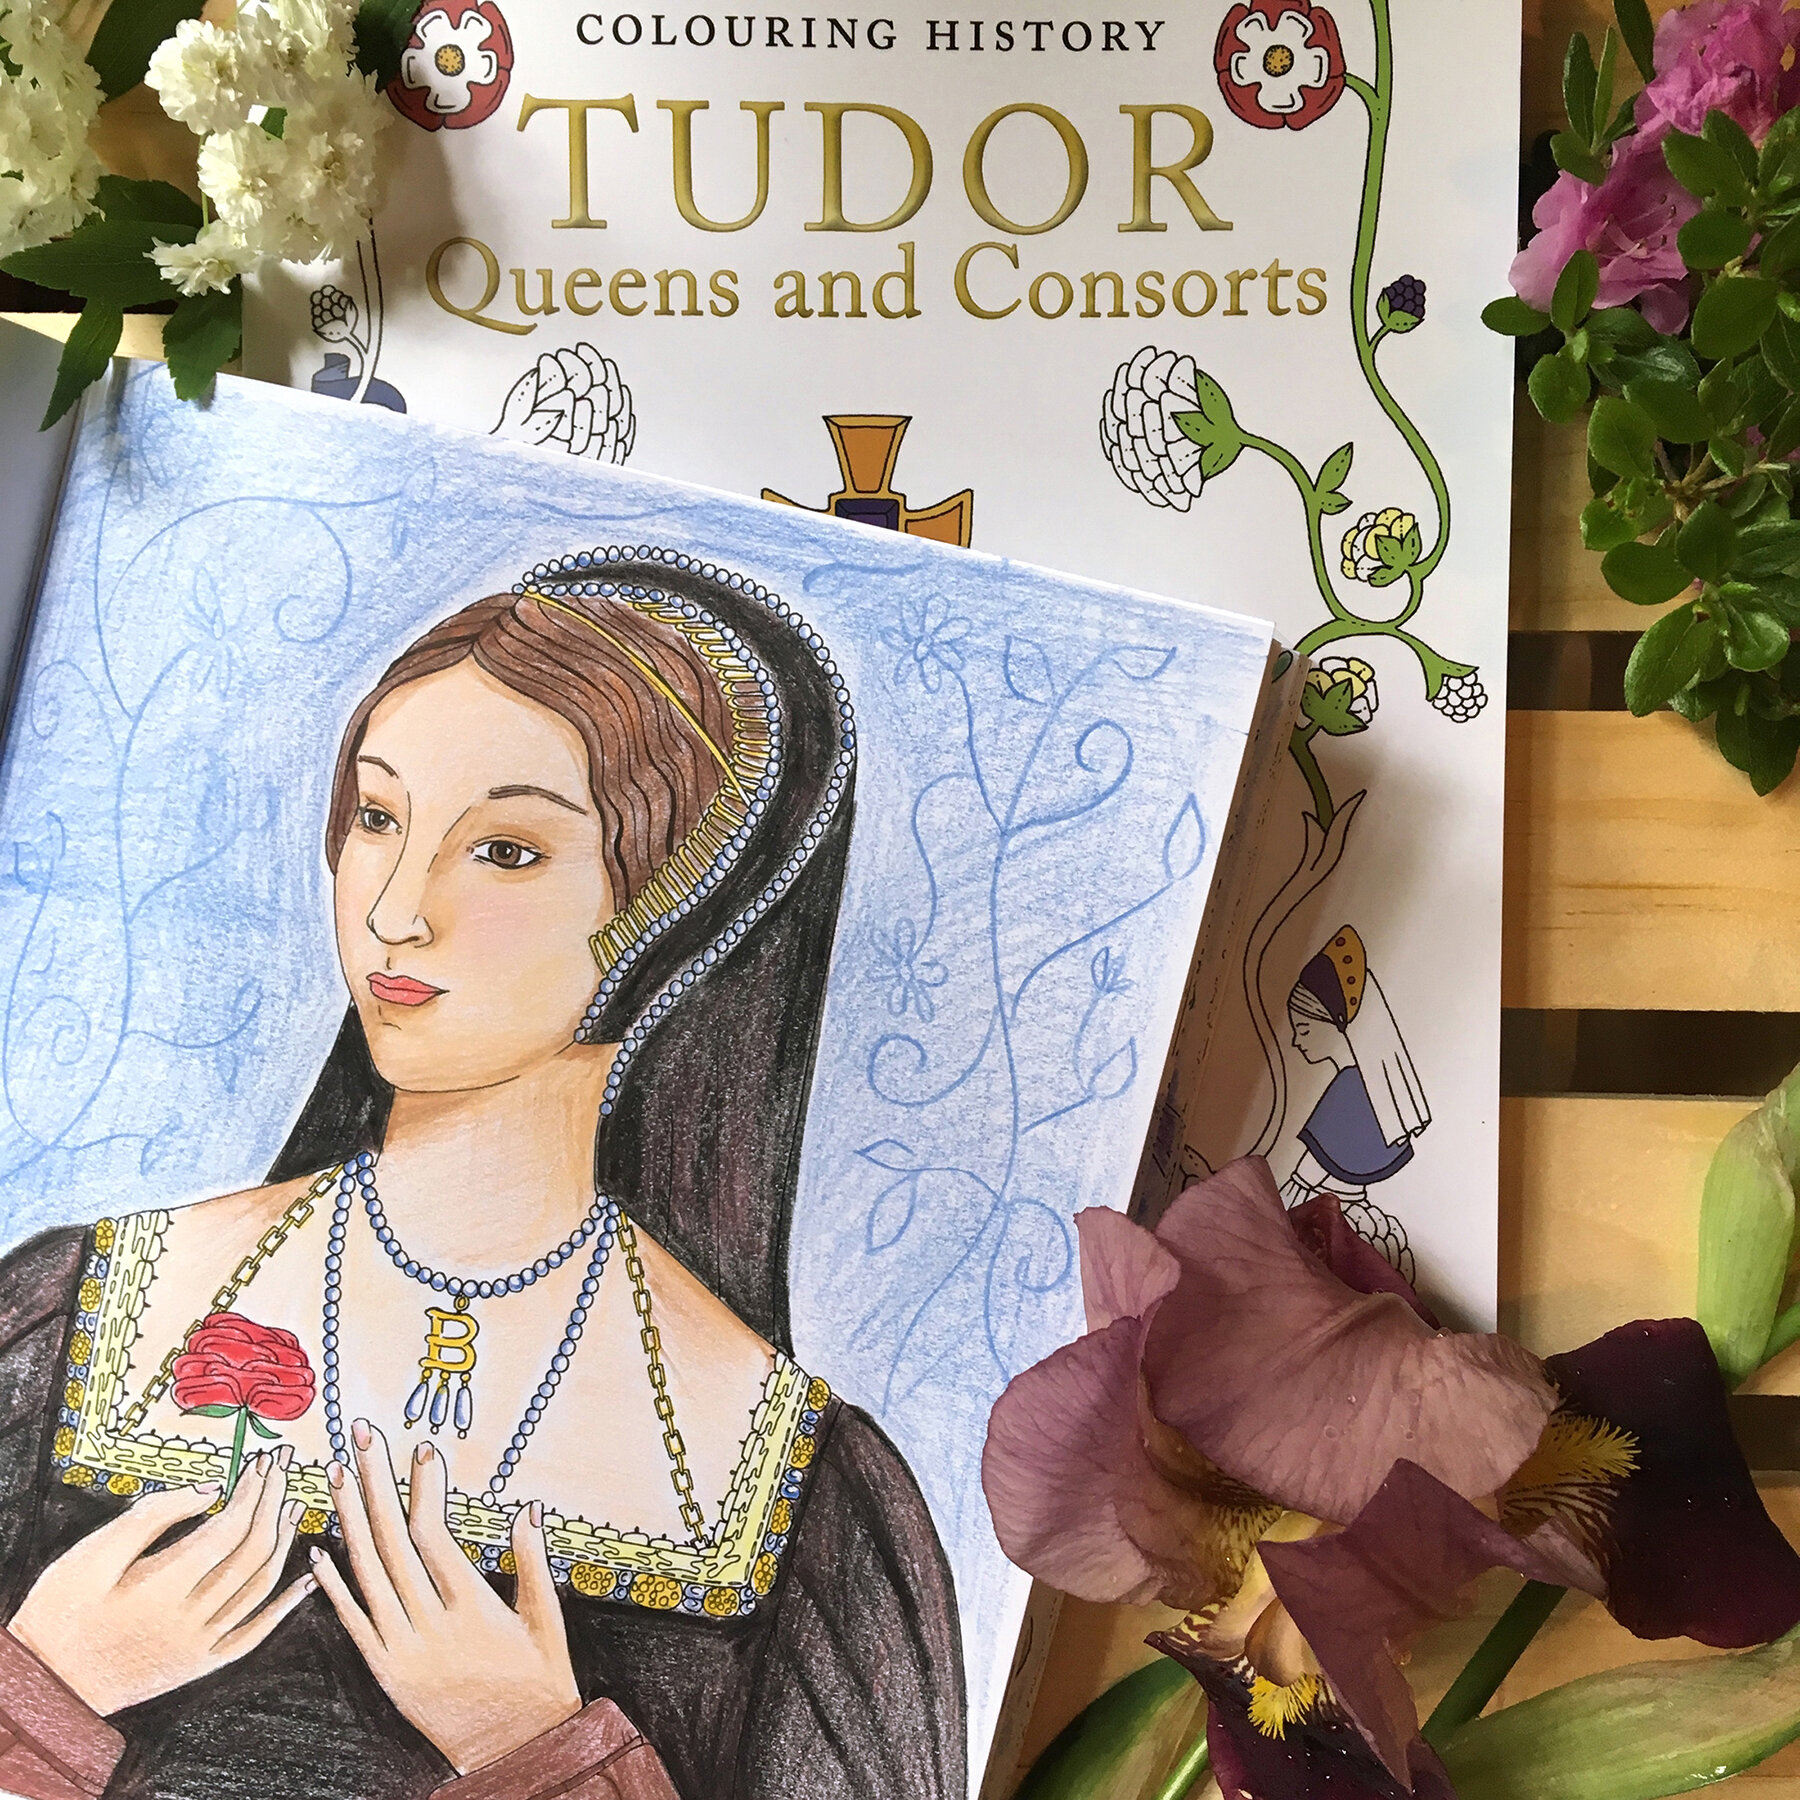 Anne Boleyn portrait page from  Colouring History: Tudor Queens and Consorts